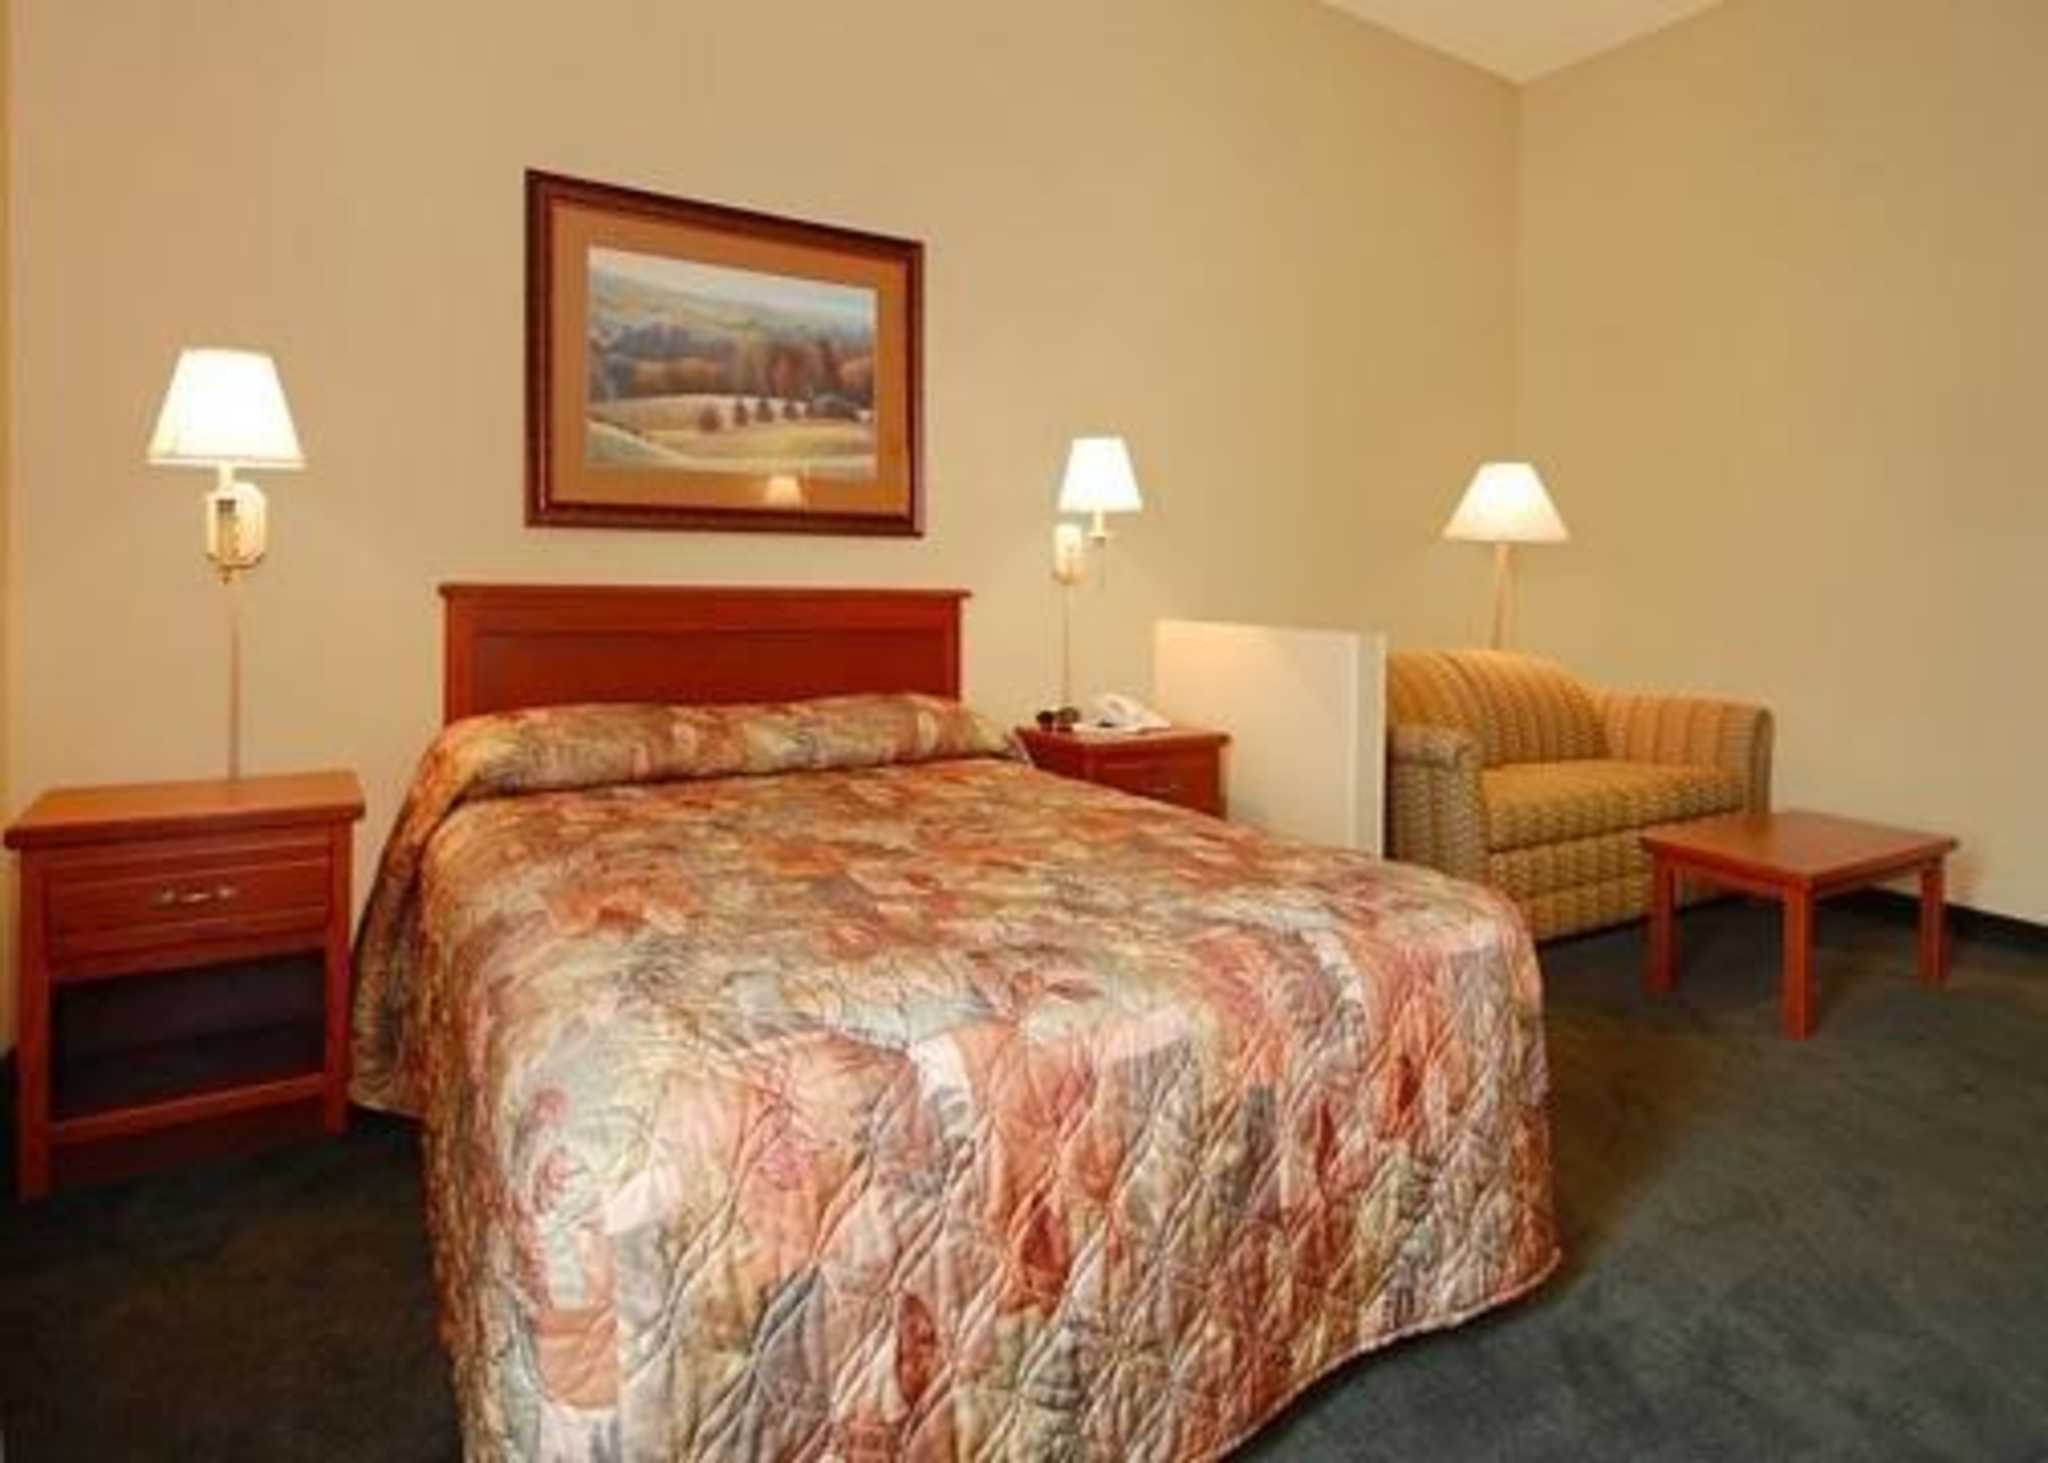 Econo Lodge Inn & Suites image 2